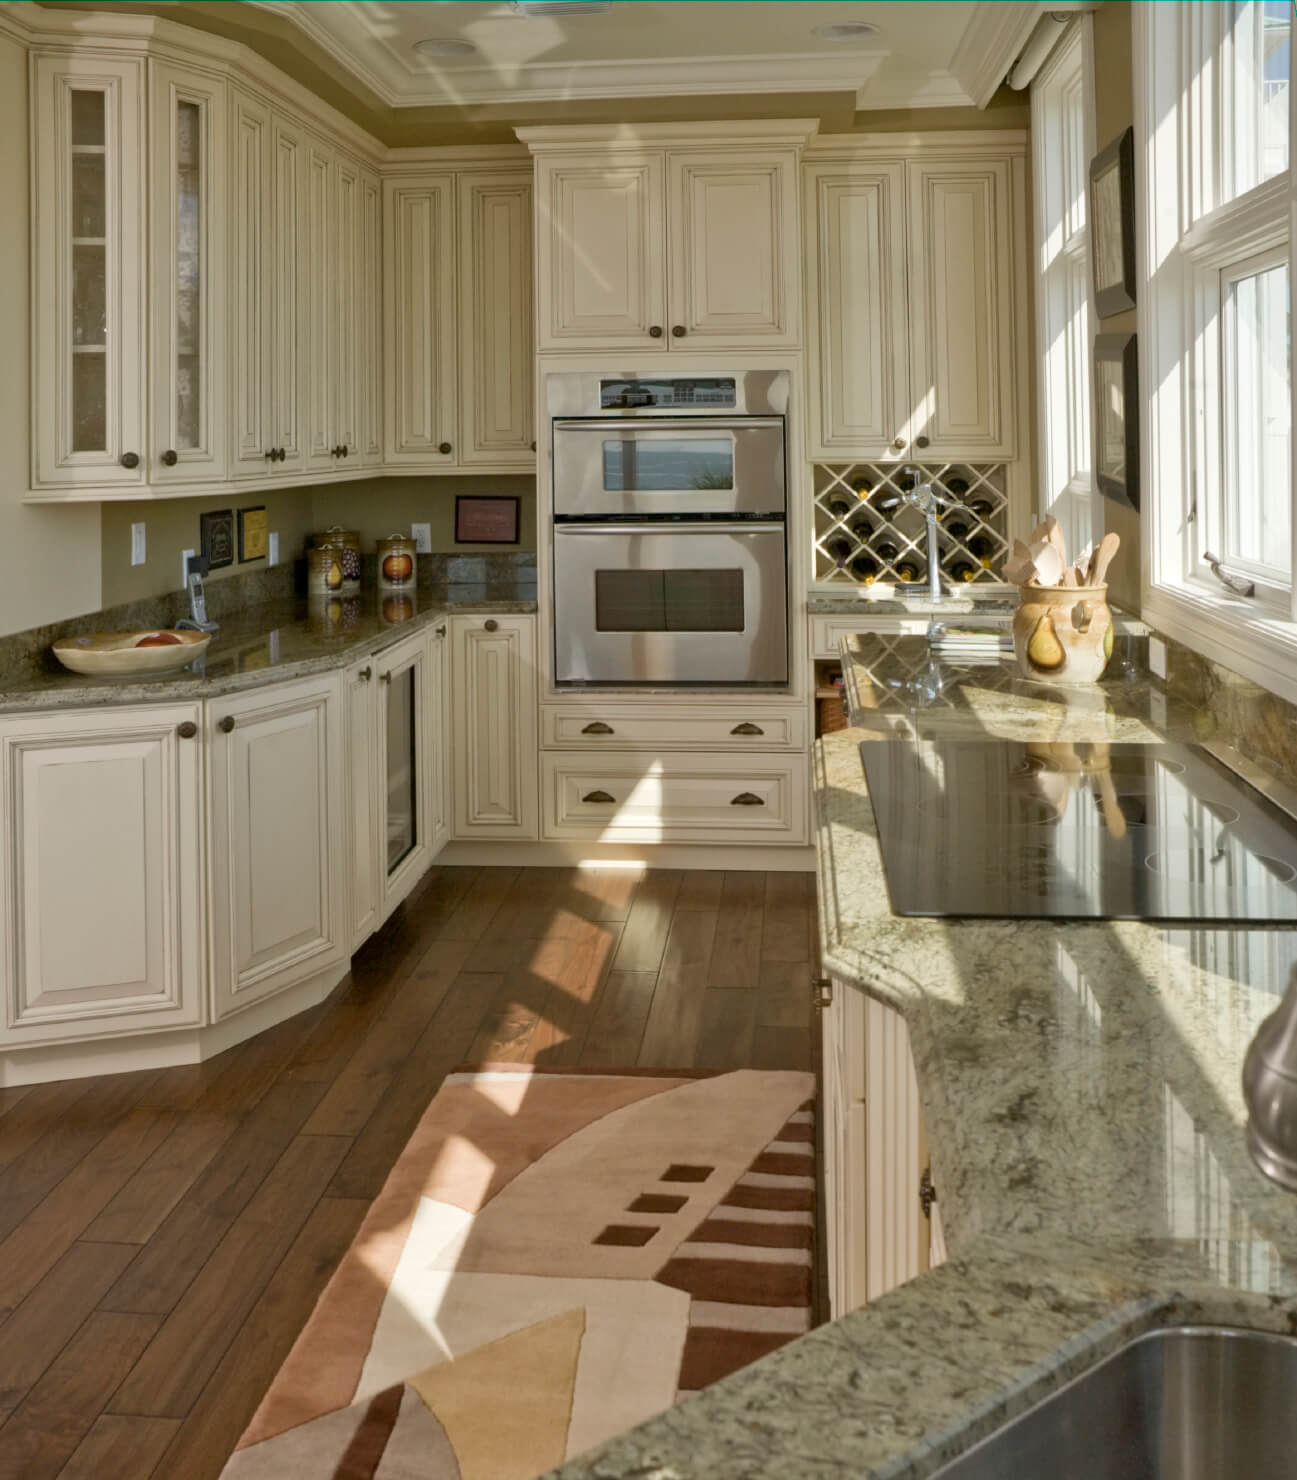 Dark Beige Kitchen Cabinets: 41 White Kitchen Interior Design & Decor Ideas (PICTURES